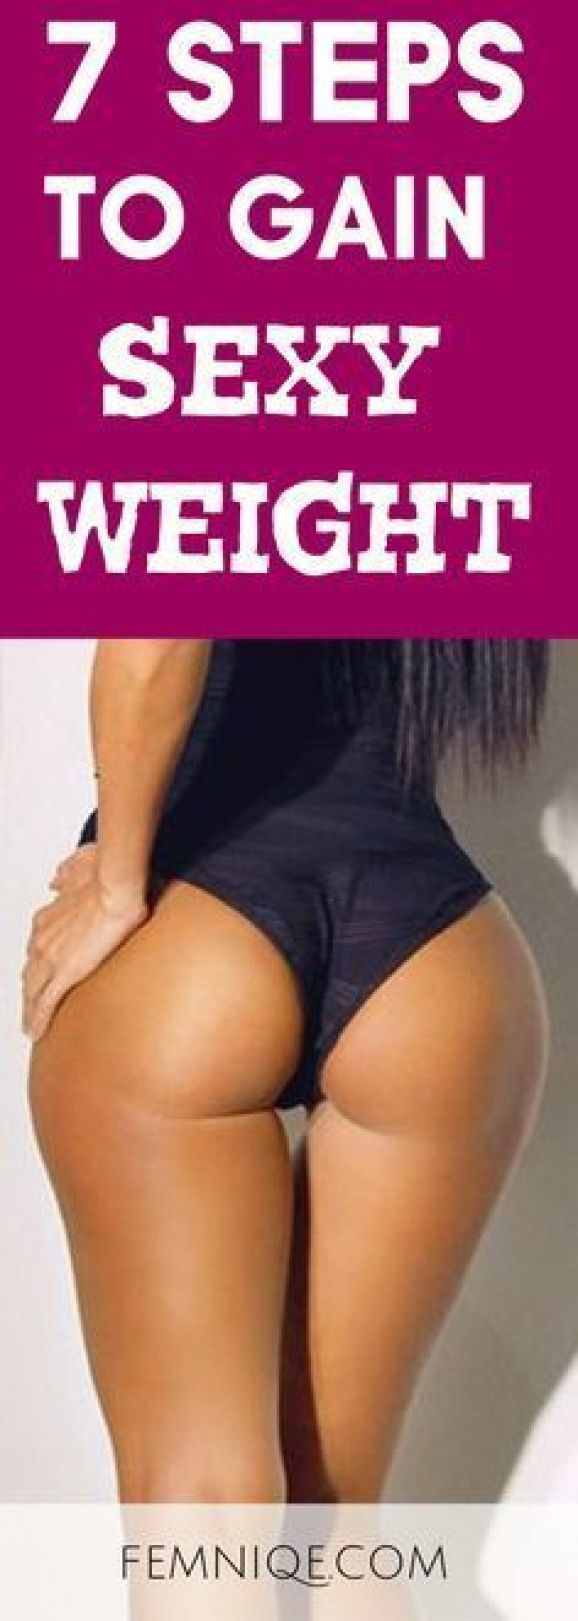 Forum on this topic: How to Gain Weight Fast for Skinny , how-to-gain-weight-fast-for-skinny/